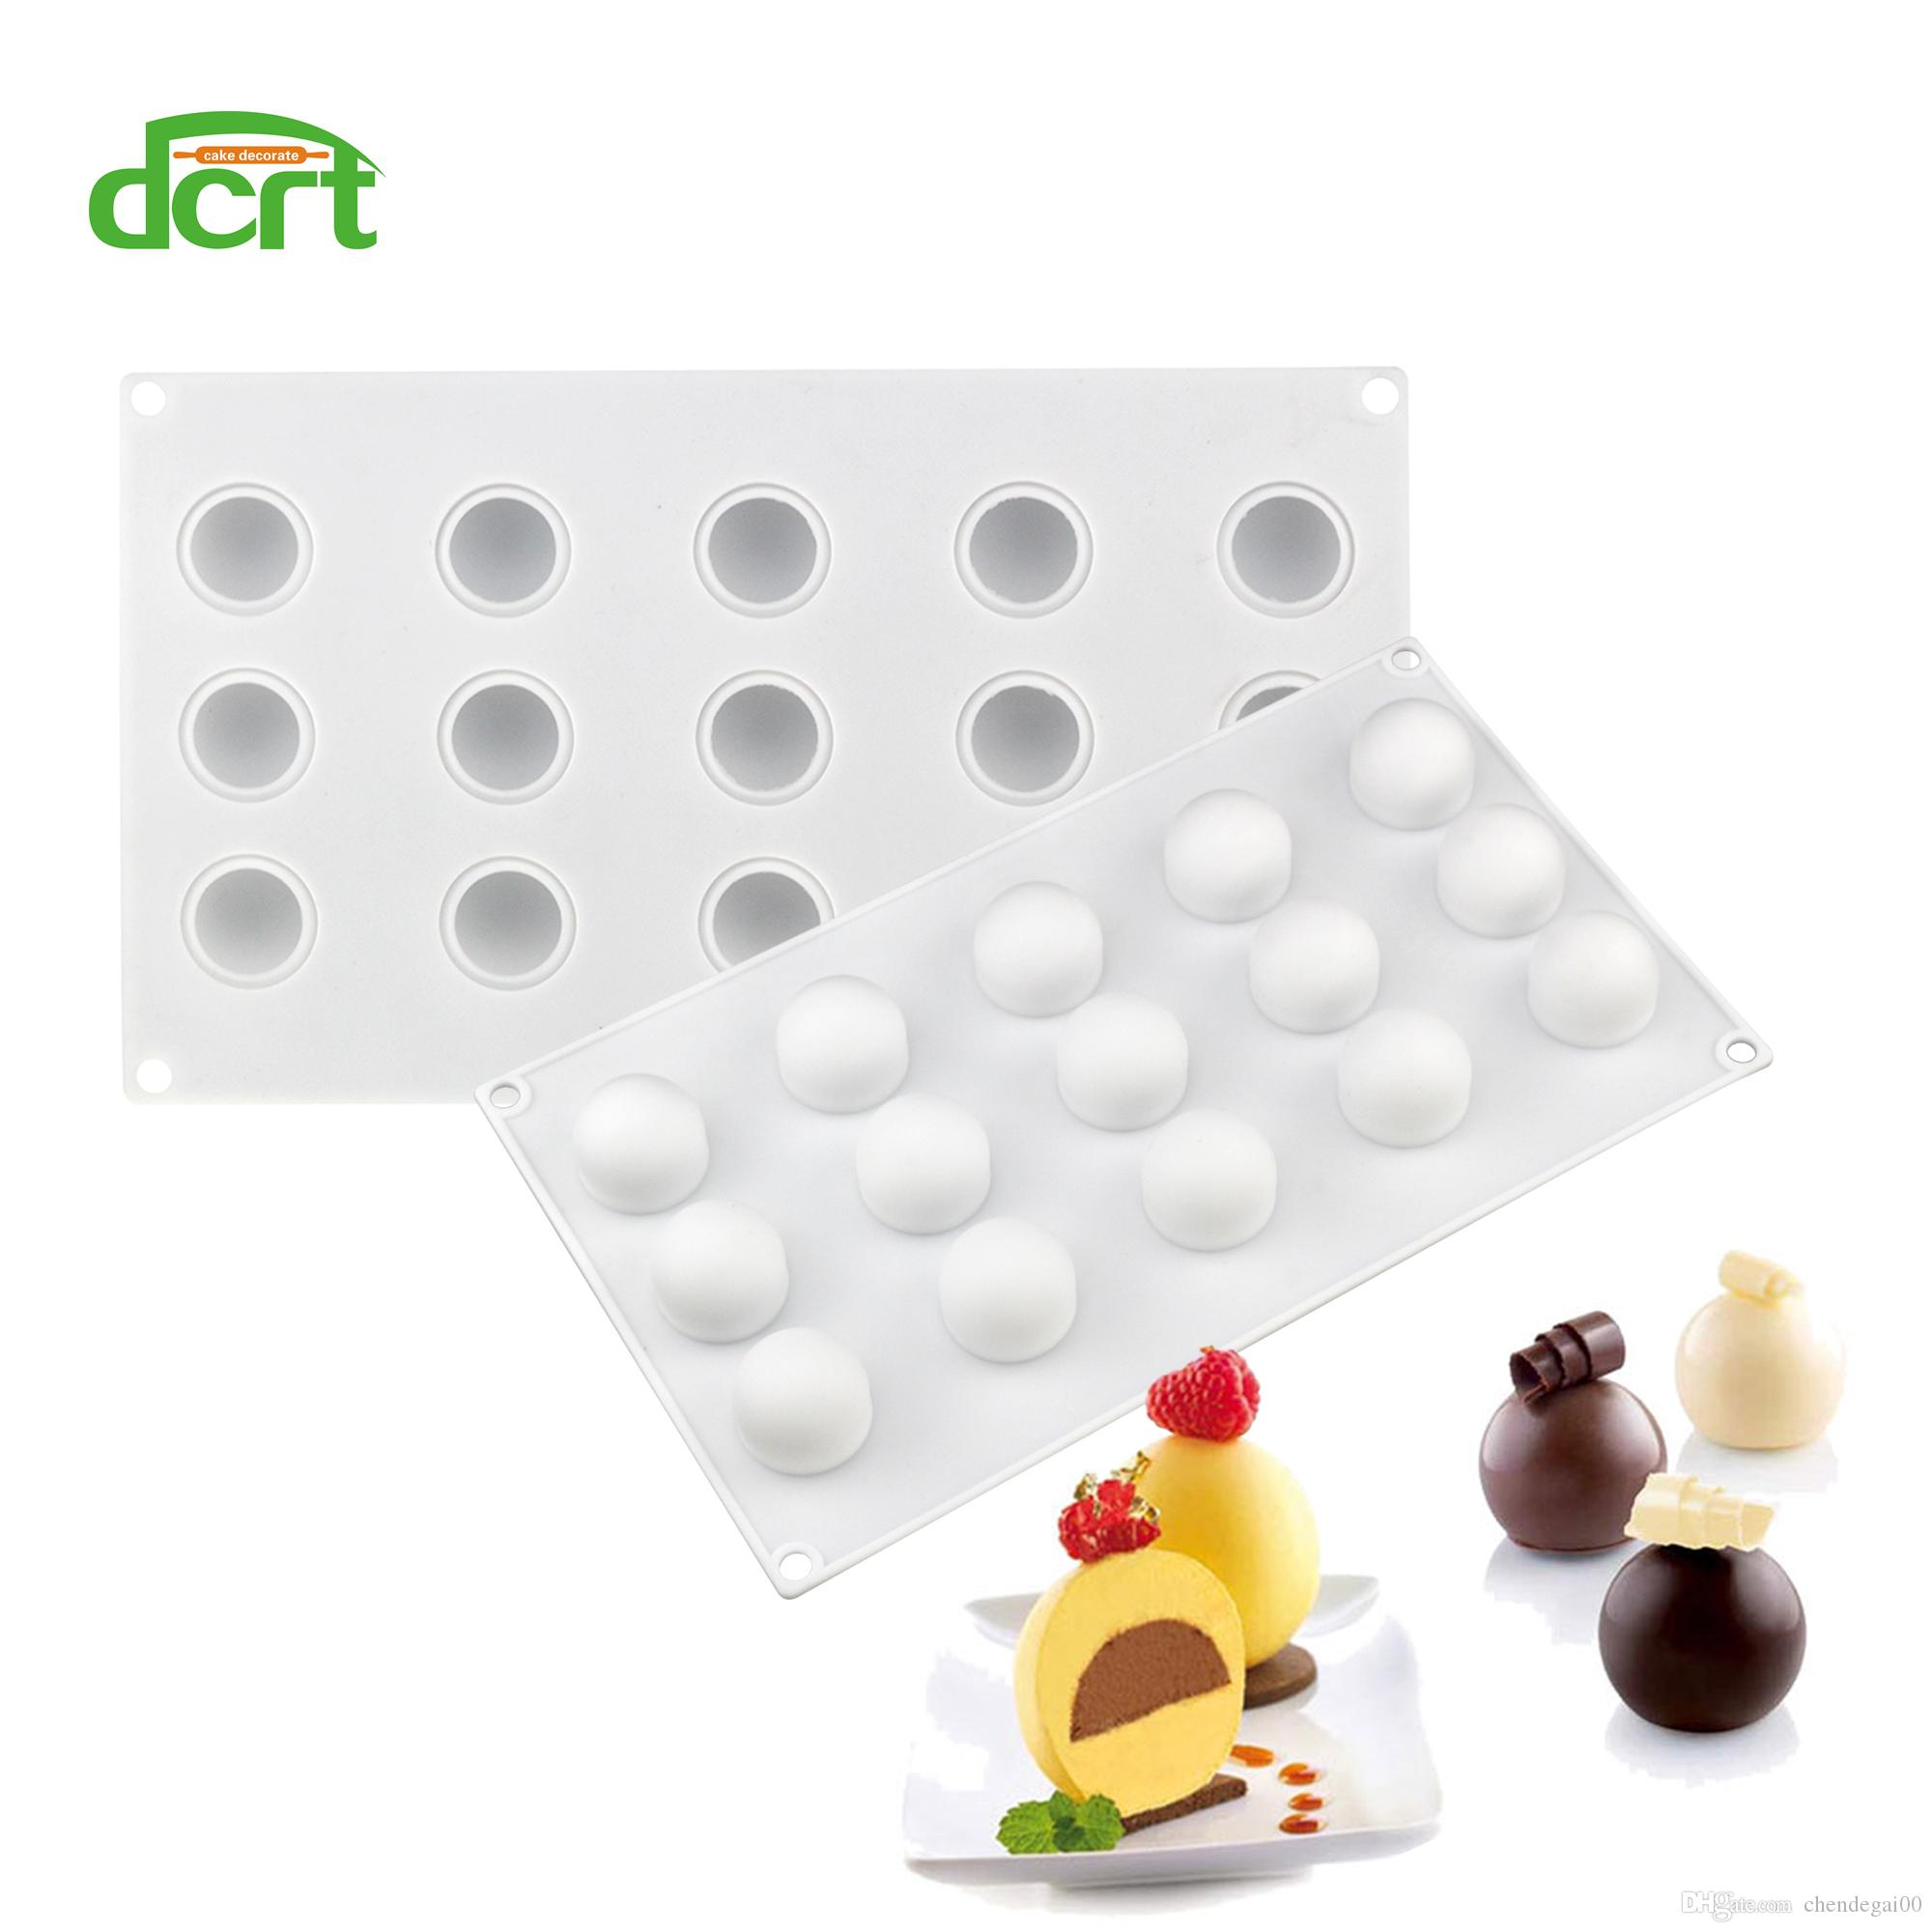 15 Holes Ball Shaped Silicone Cake Mold For Truffles Chocolate Desserts Baking Pan Cakes Decorating Tools Kitchen Accessories